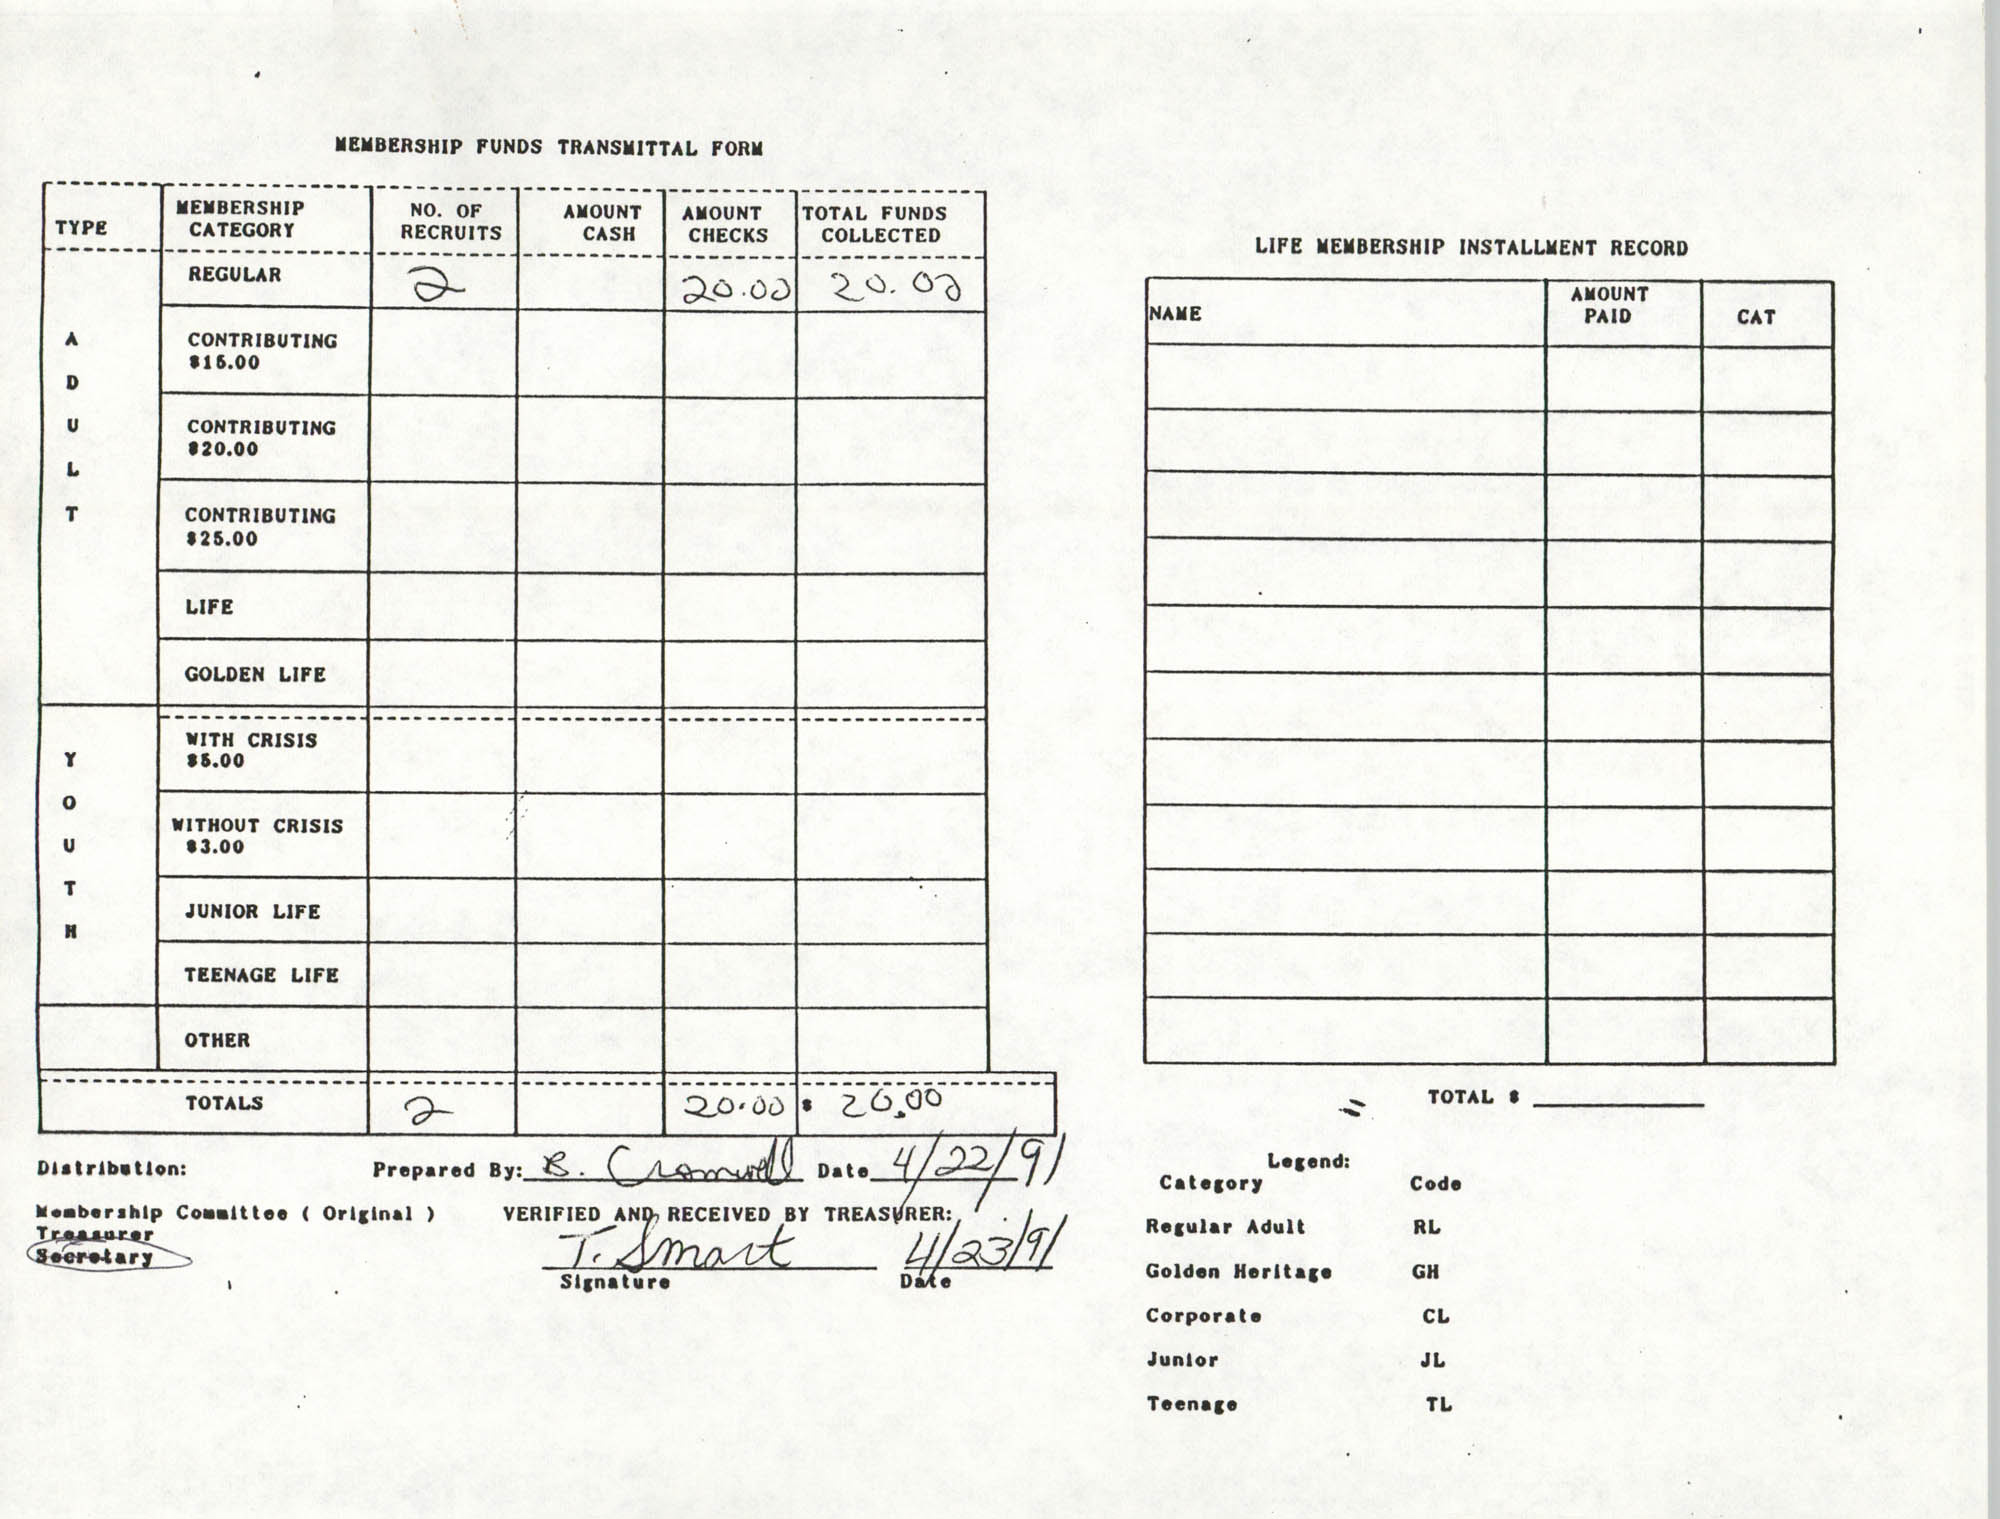 Charleston Branch of the NAACP Funds Transmittal Forms, April 1991, Page 6